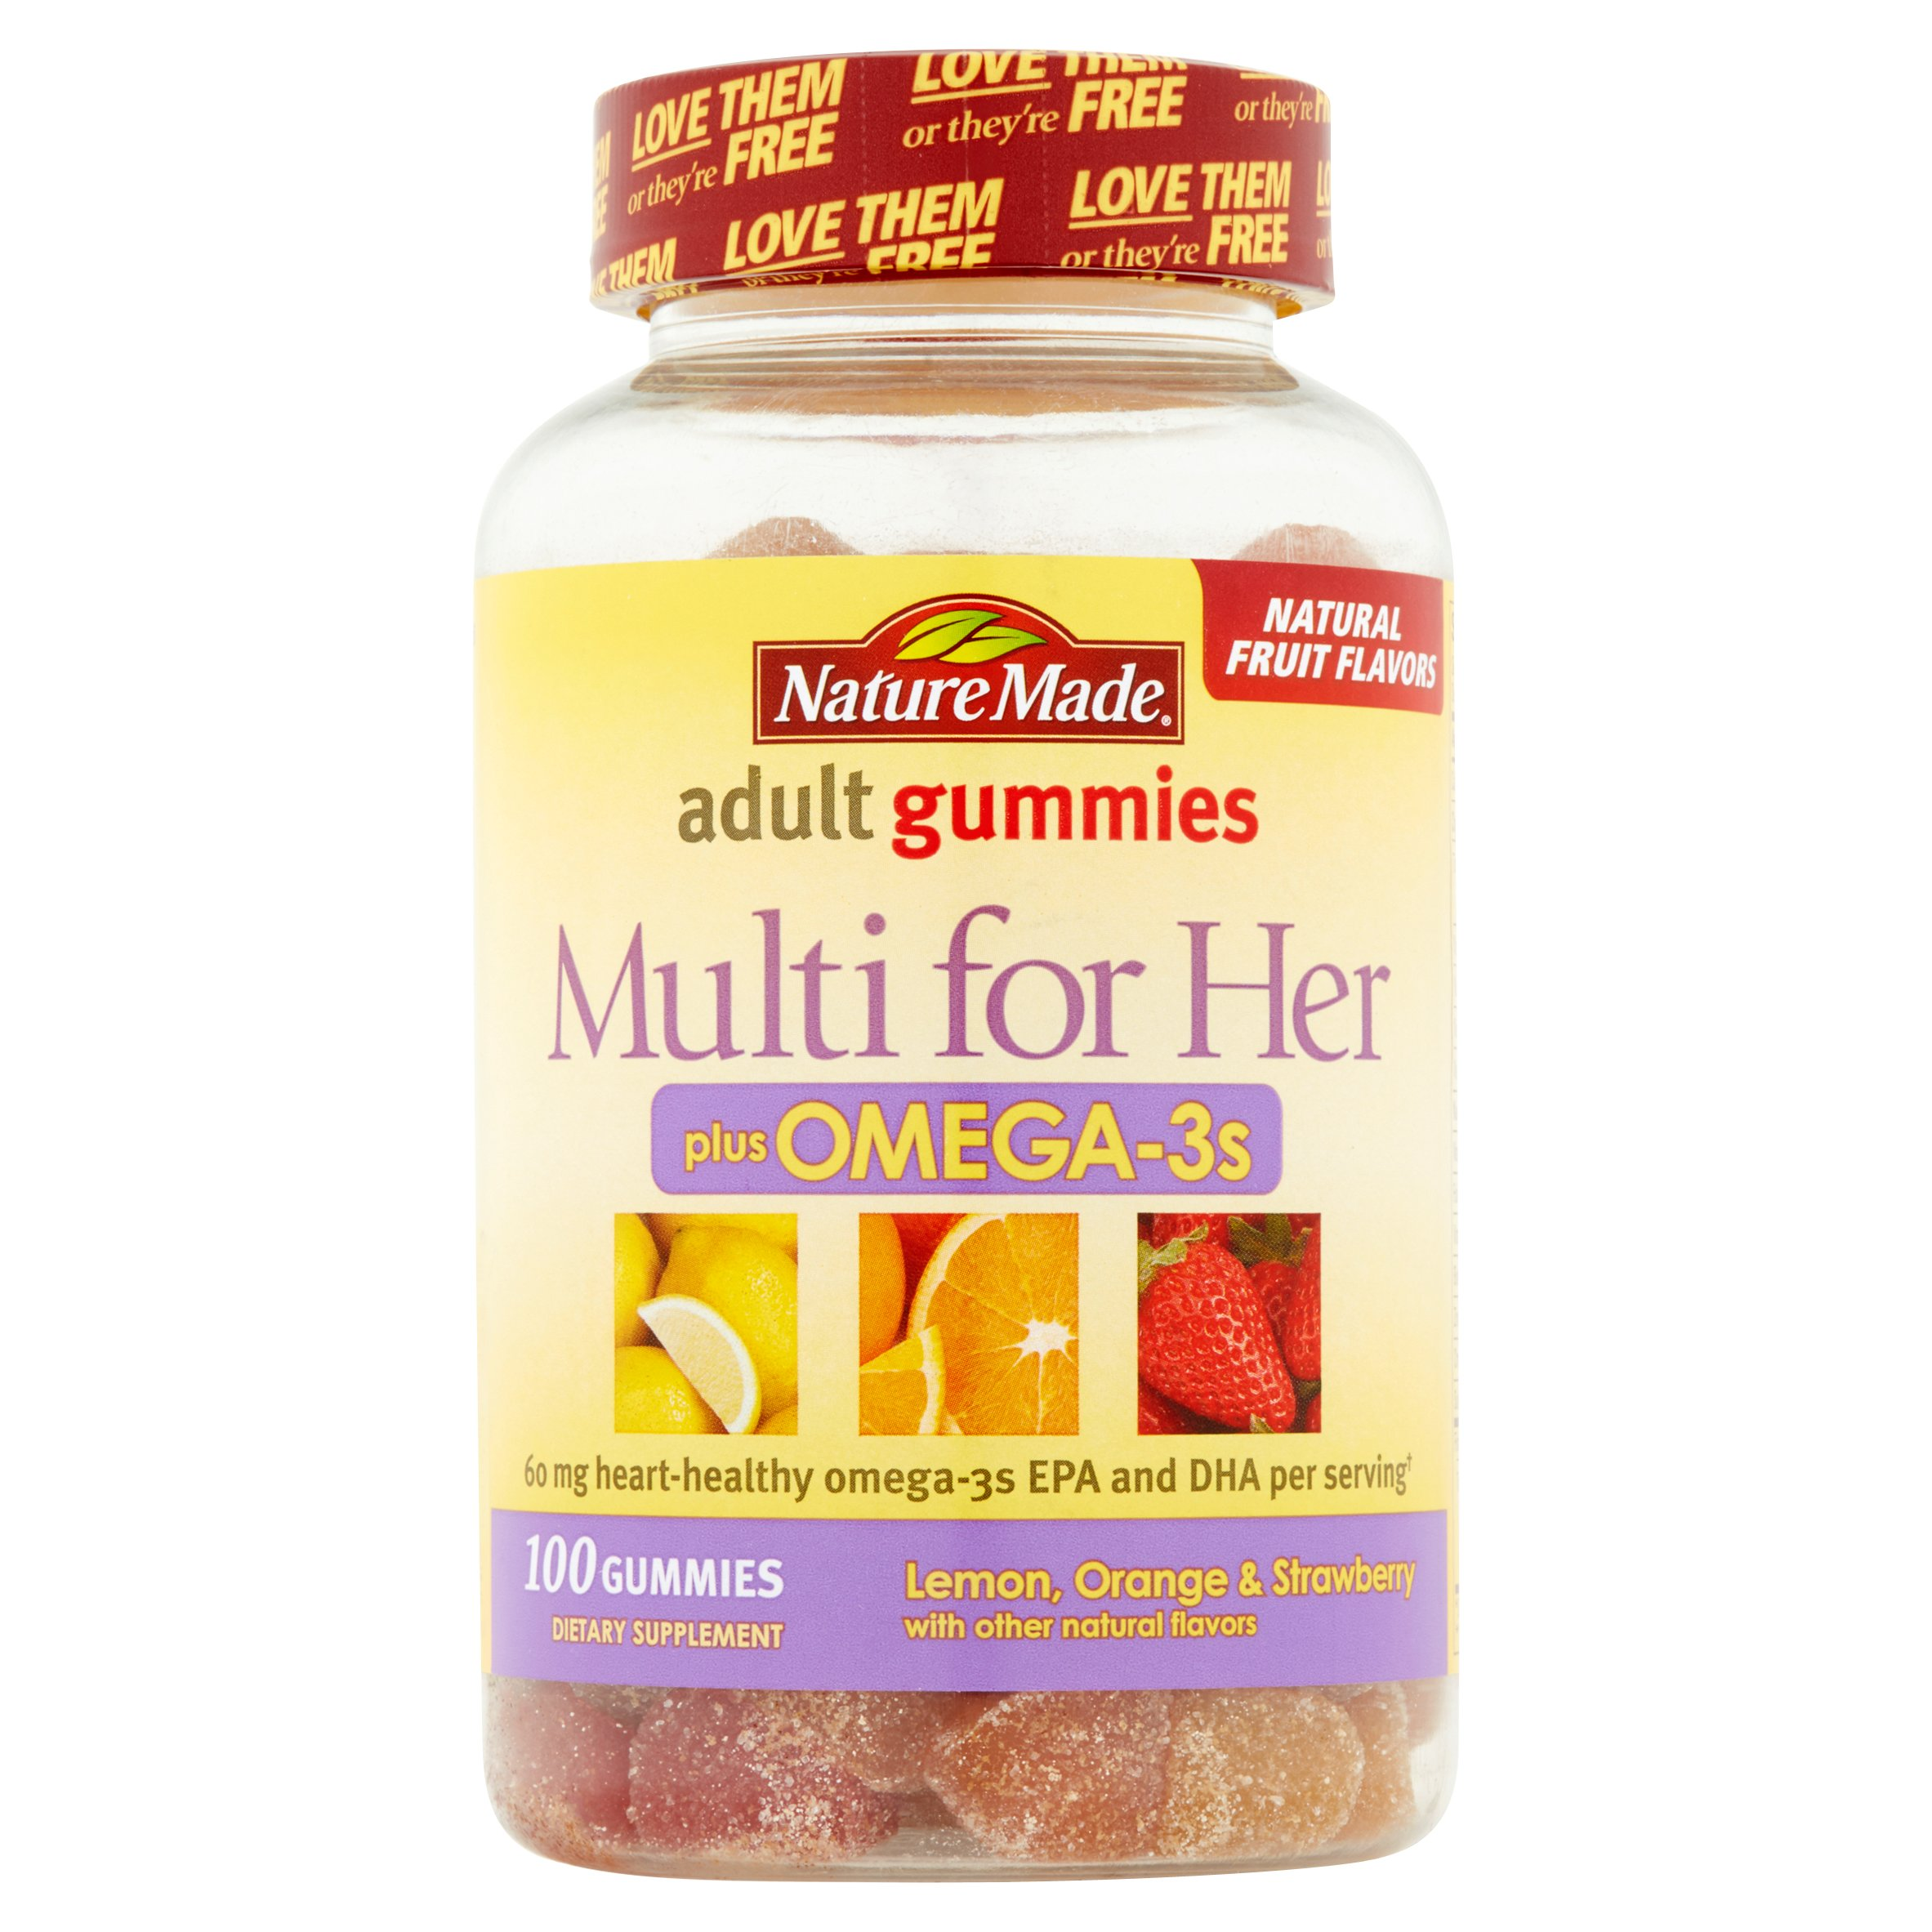 Nature Made Adult Gummies Multi for Her Plus Omega-3s ...